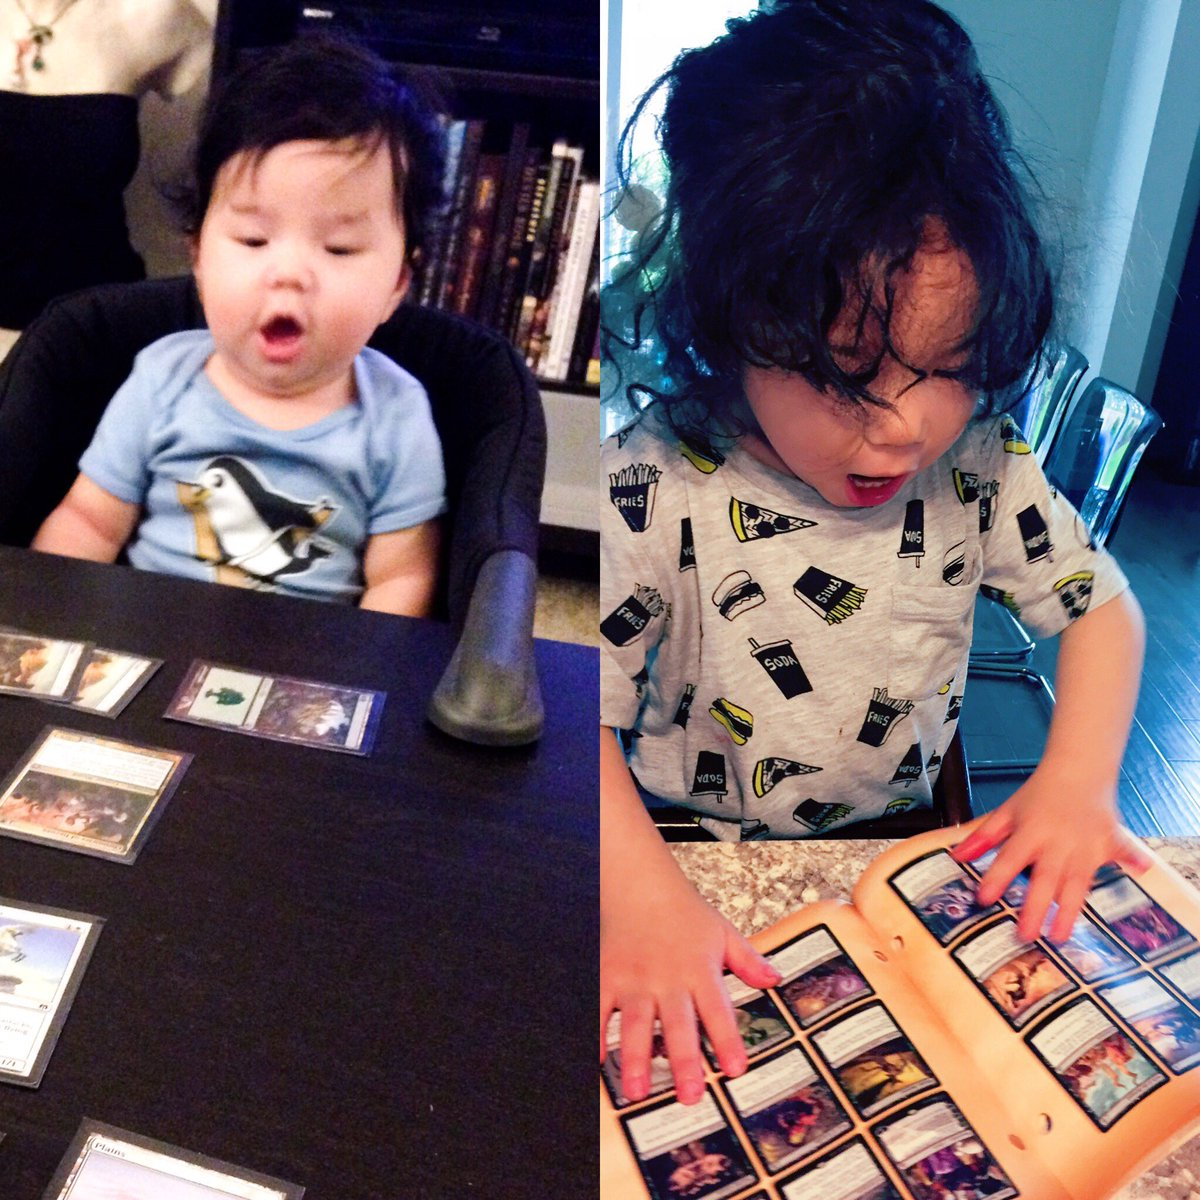 test Twitter Media - Two years later and he still has the same reaction. Top 8 player in the making? #mtg https://t.co/OBM465Ci39